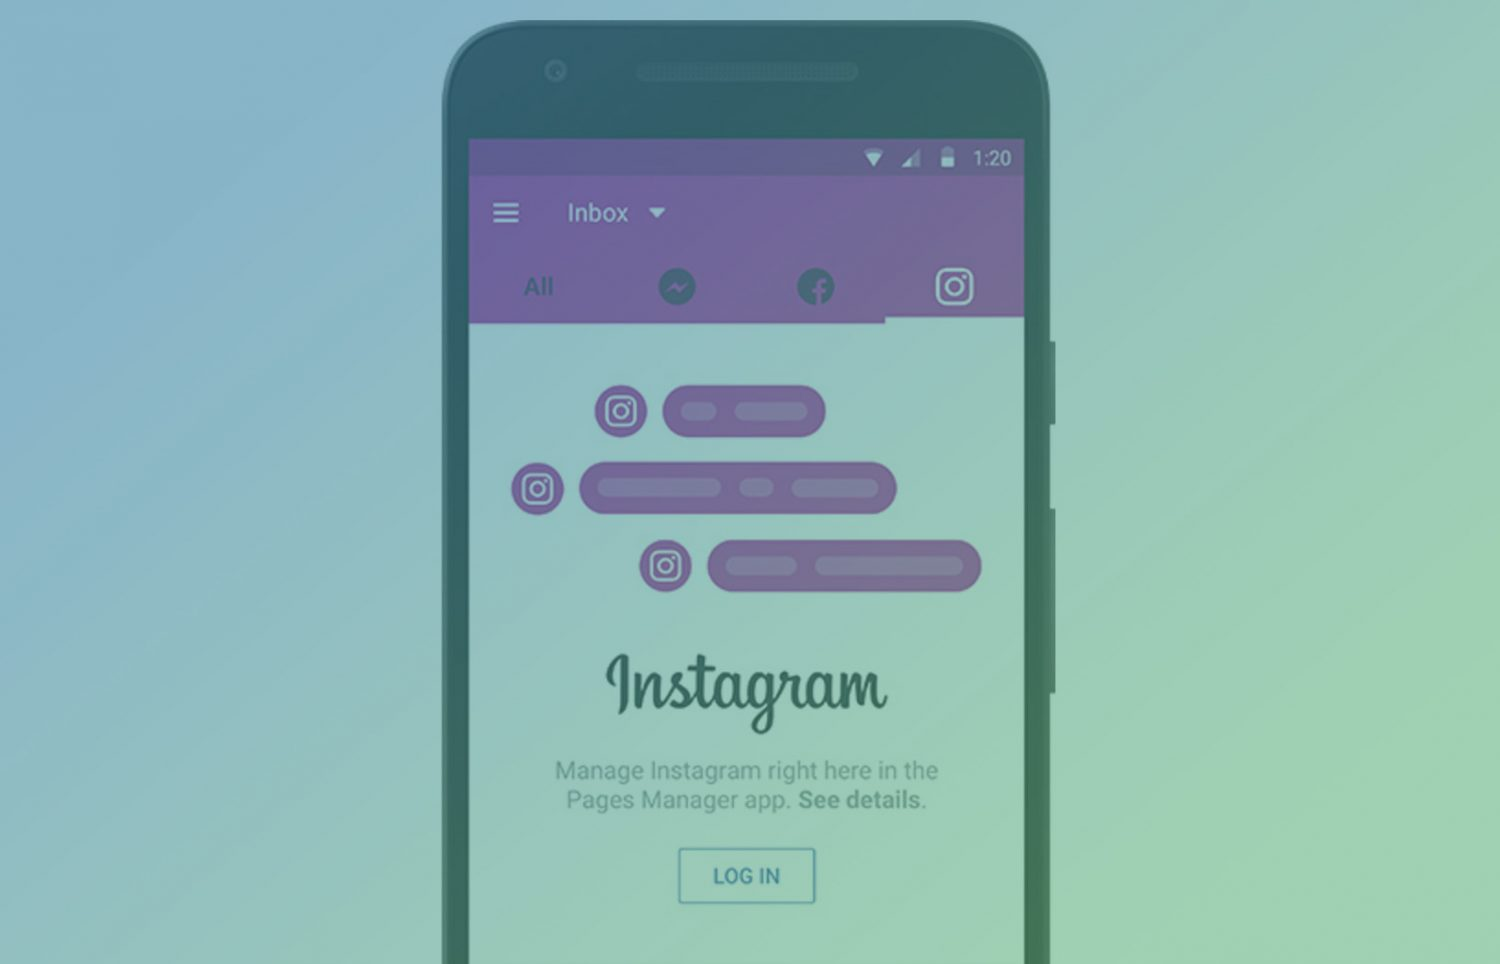 How to Link Instagram to Facebook for Social Media Admins